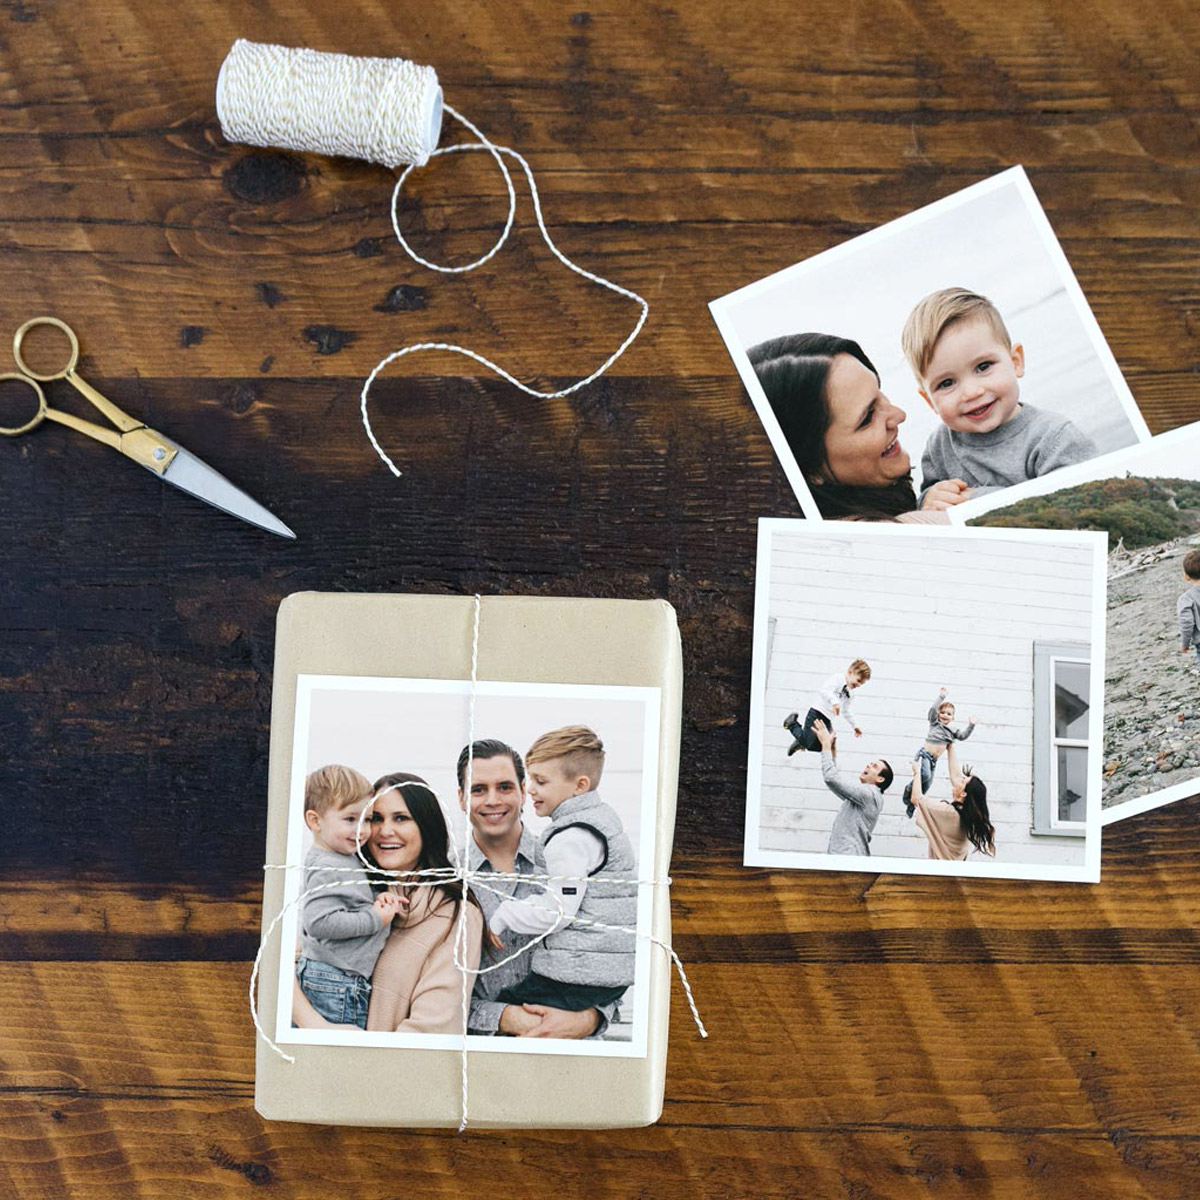 Gift wrapped using photo print as embellishment